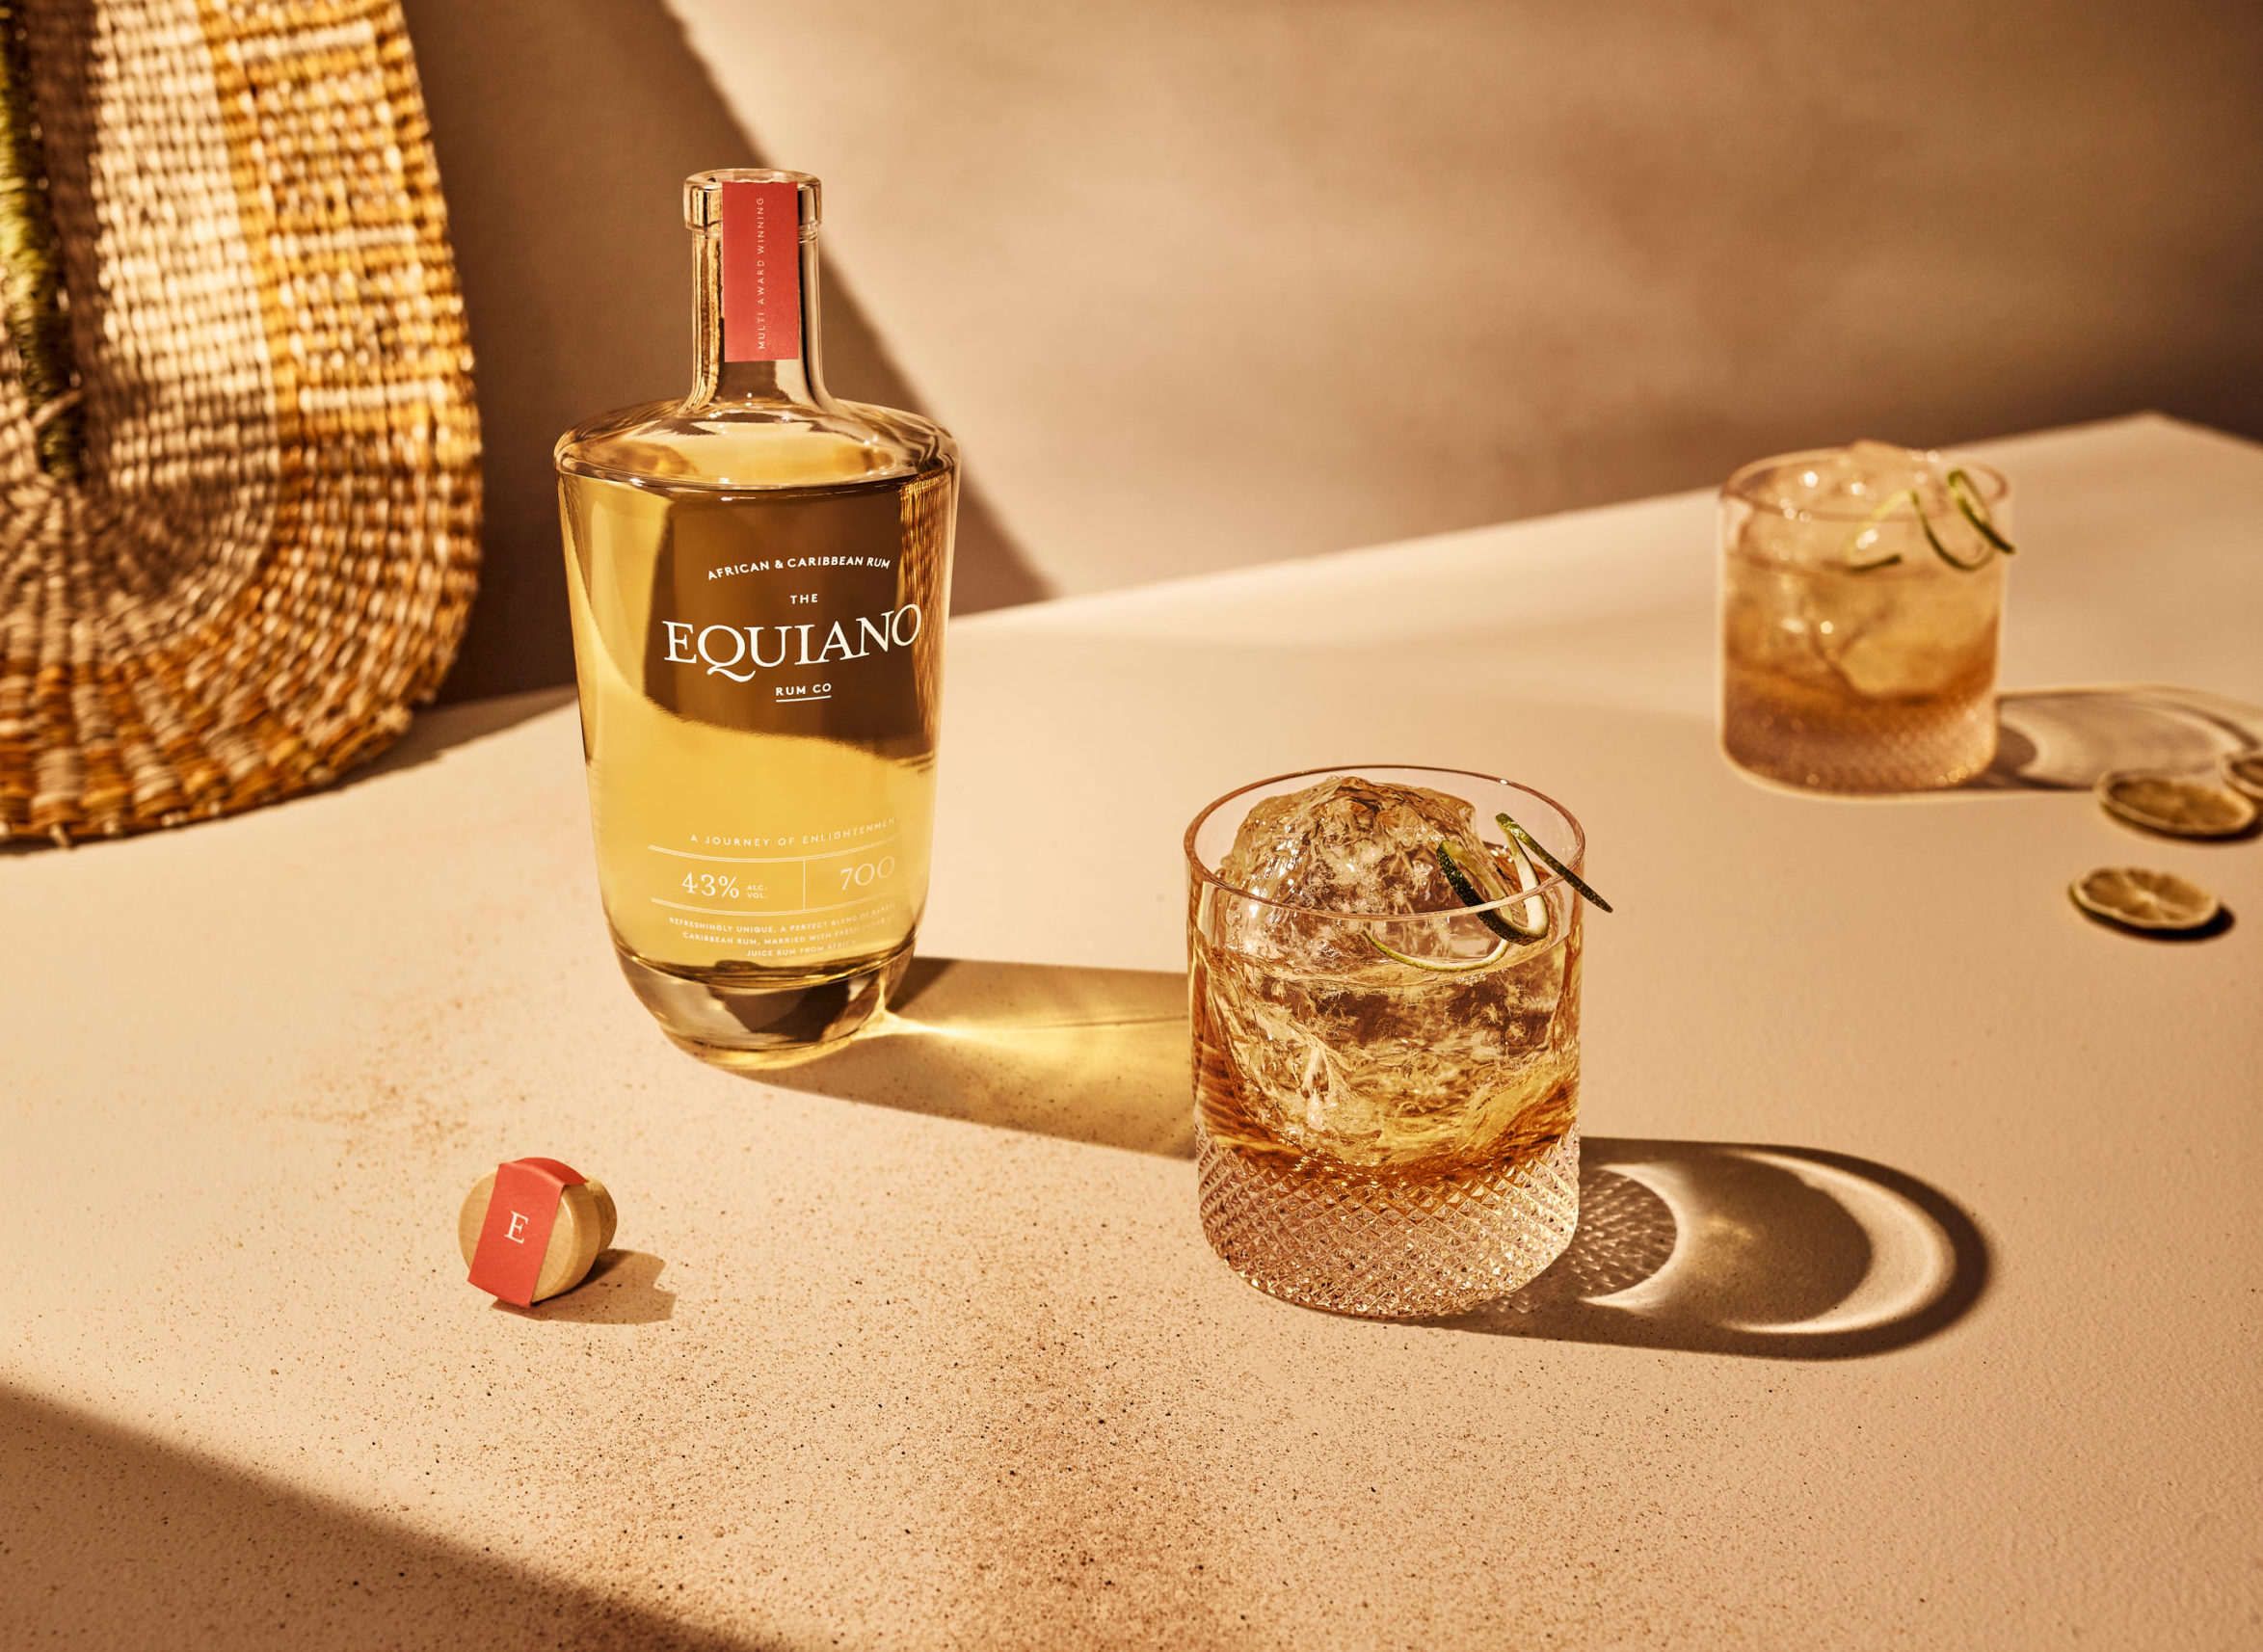 Equiano Light - Old King Cocktail